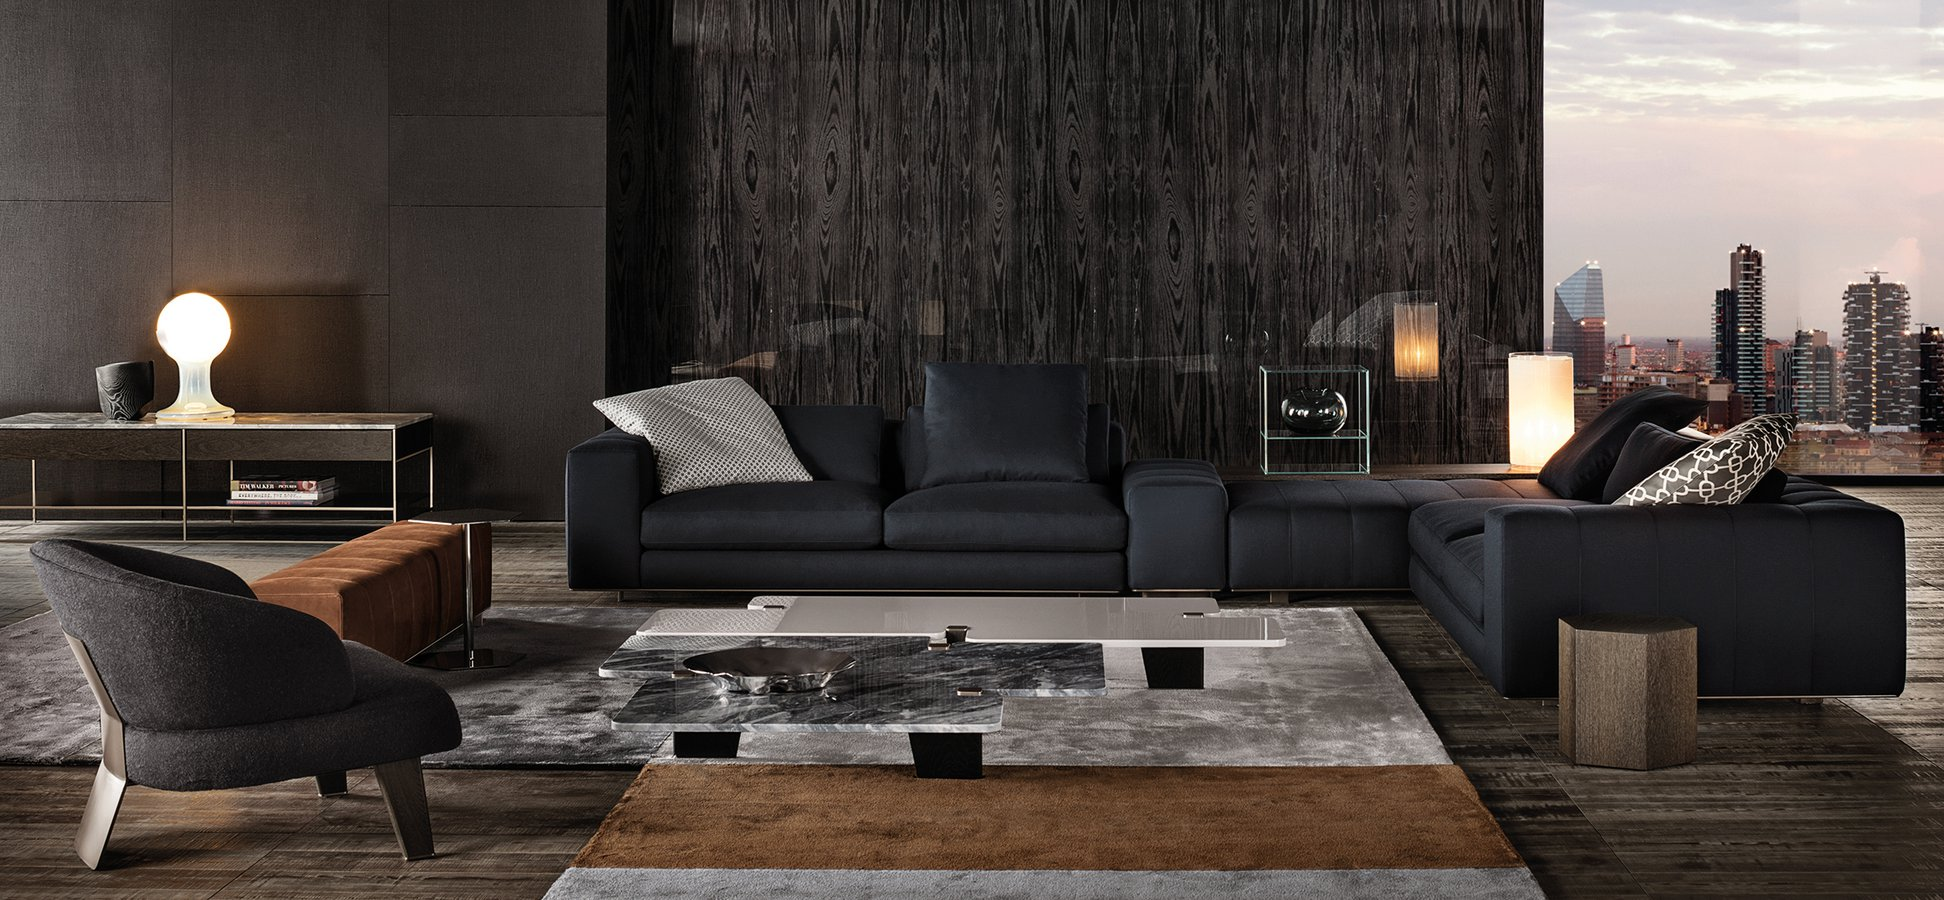 Freeman Tailor Seating System By Minotti Ecc